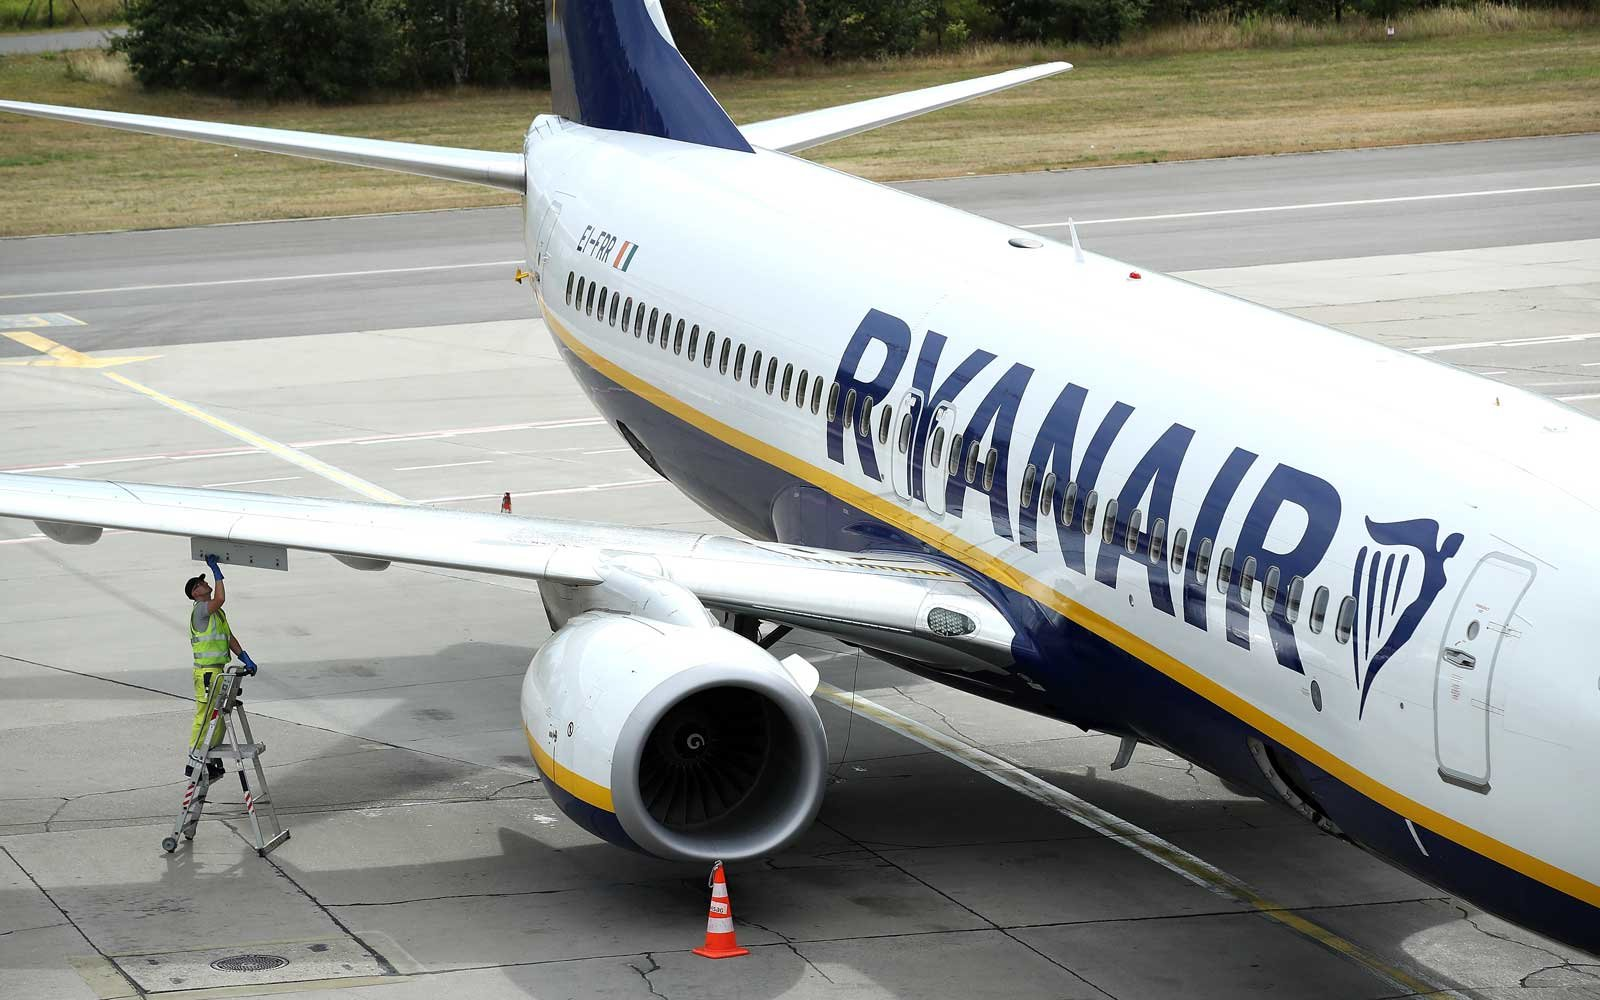 A ground crew worker stands on a ladder at a RyanAir passenger plane at Schoenefeld  Airport near Berlin during a 24-hour strike by RyanAir pilots on August 10, 2018